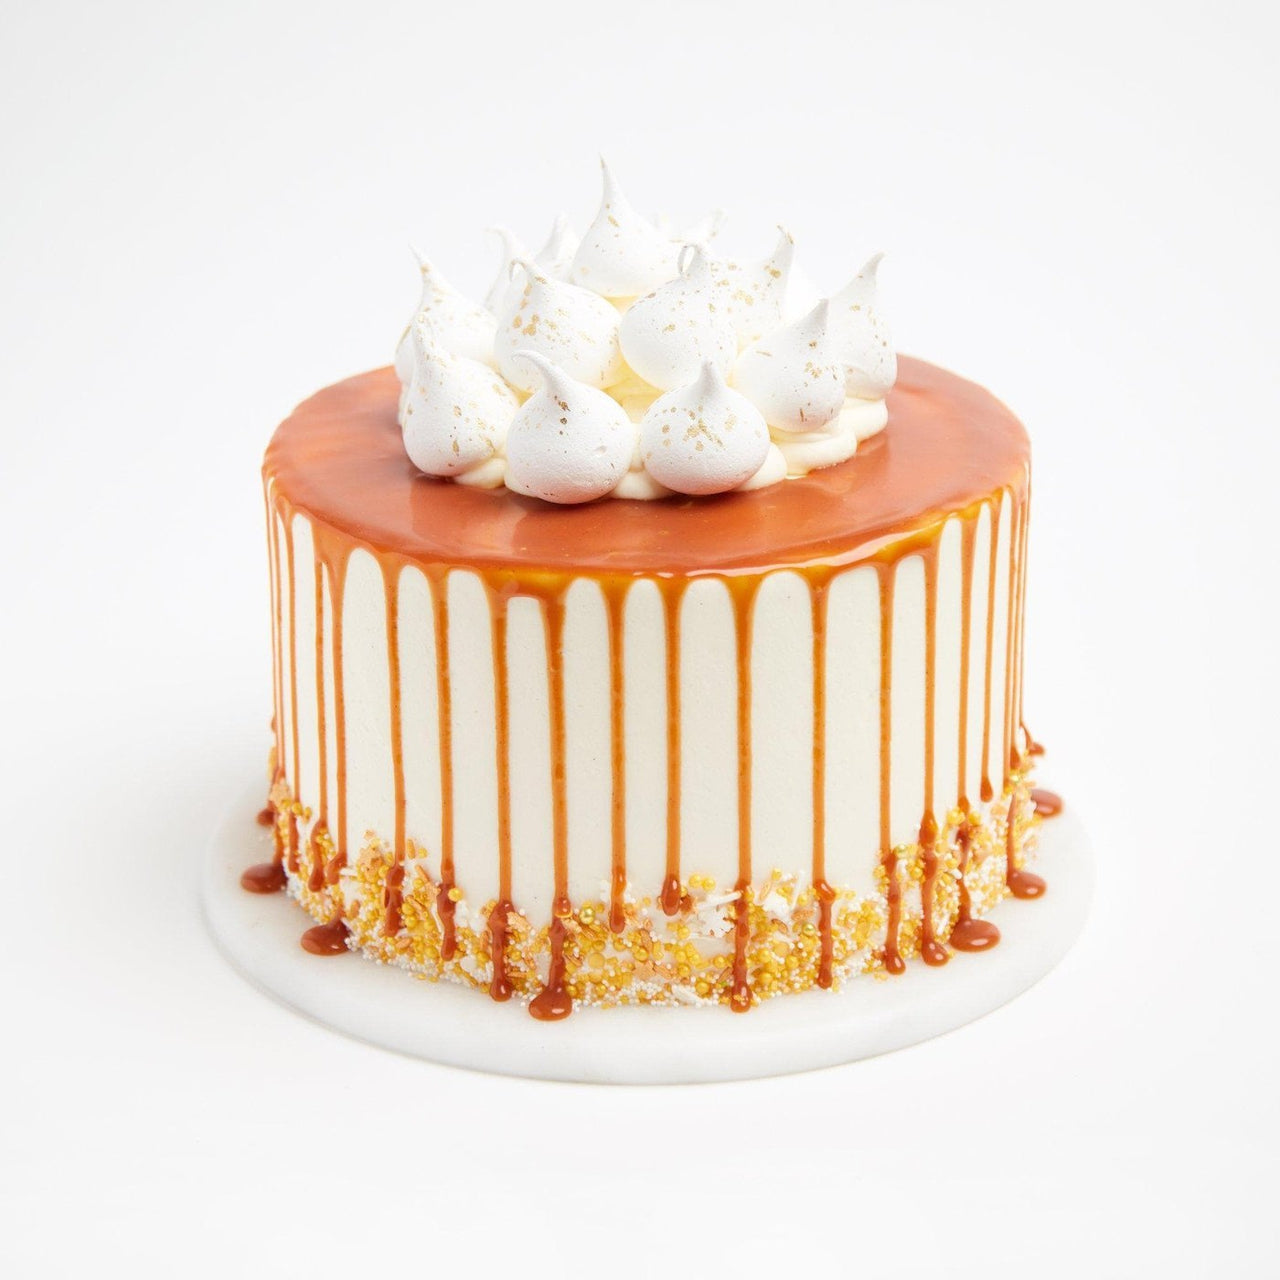 Salted Caramel Cake by Crumbs & Doilies